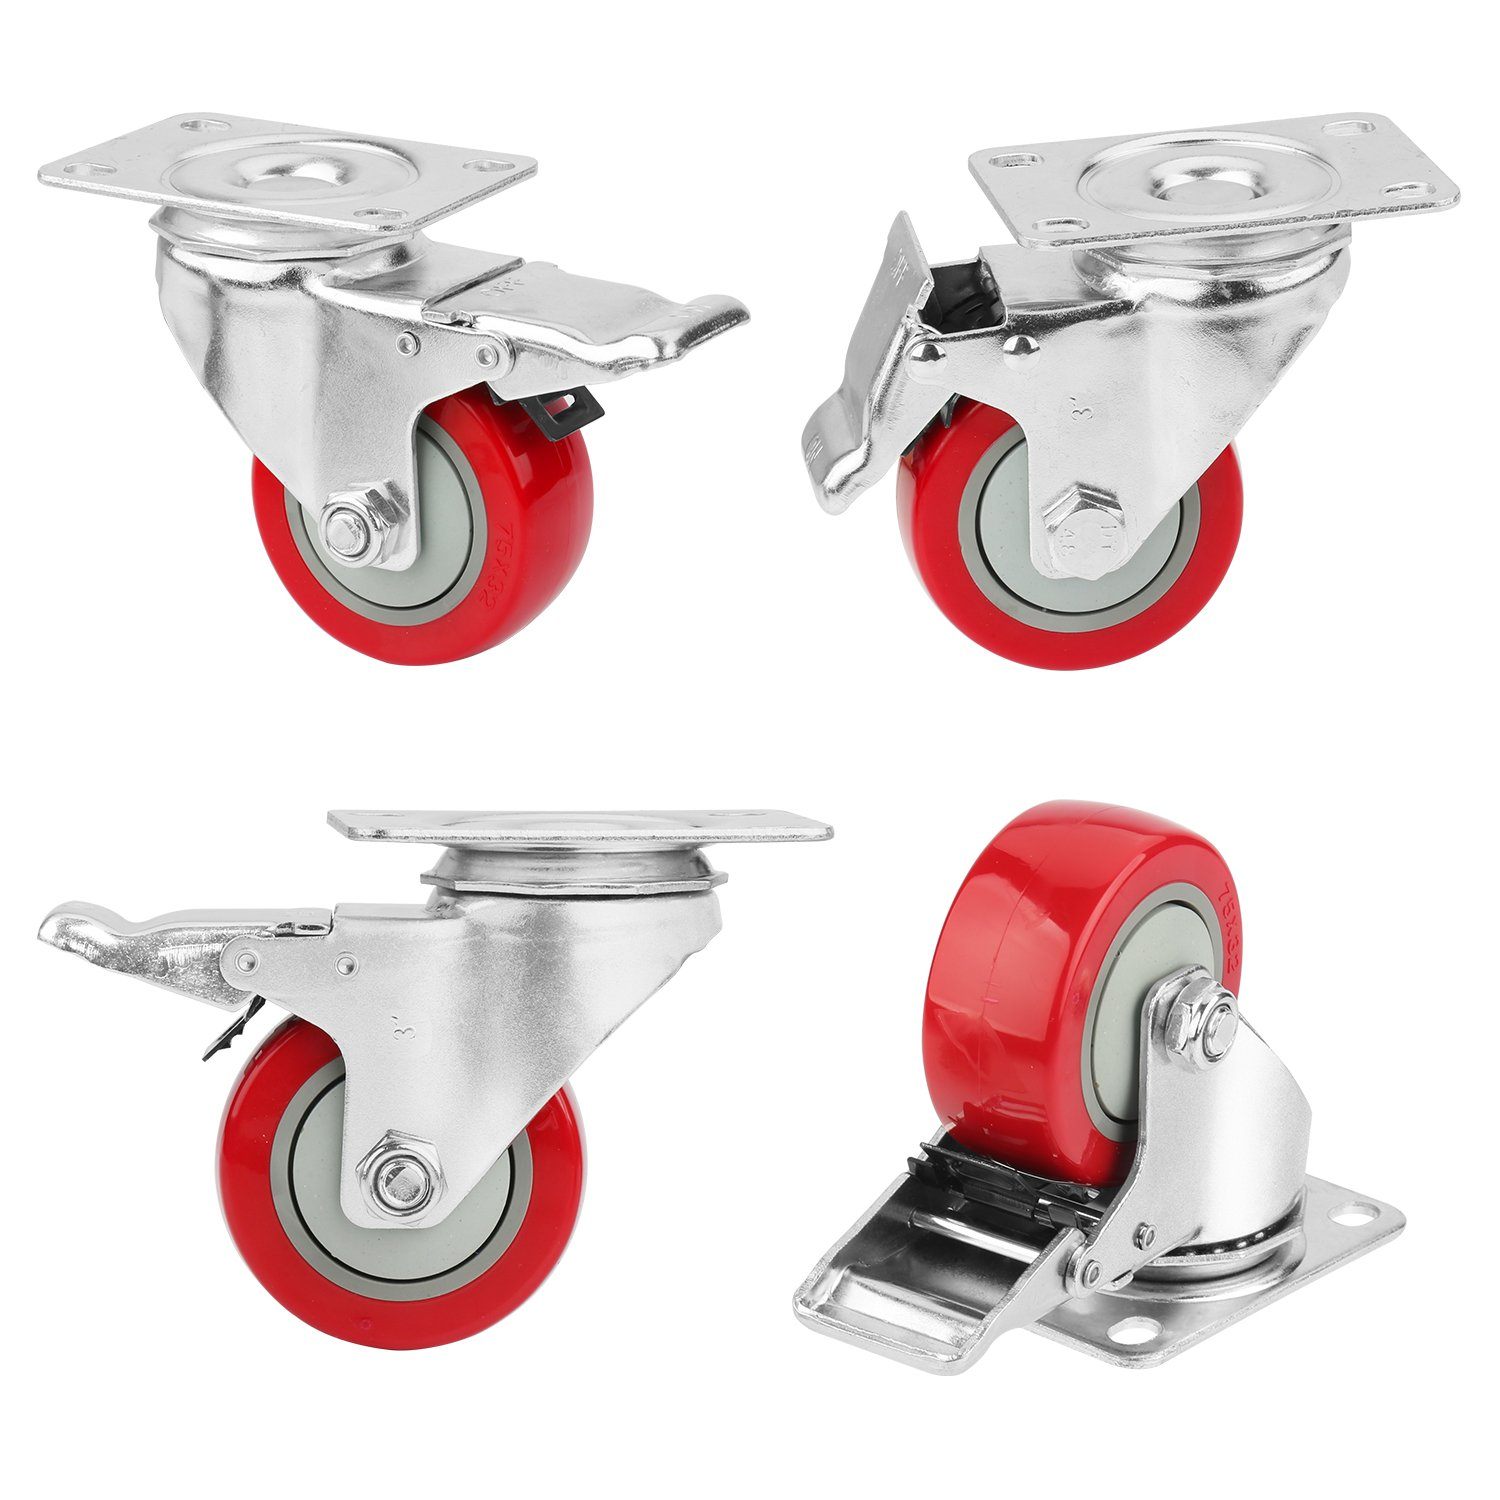 3'' Caster Wheels, PRITEK Heavy Duty Plate Casters with 360° Swivel and Lockable Top Plate No Noise Rubber Base Ball Fit for Furniture Industrial Table Cabinet Shelves (bearing 200lb each, set of 4)